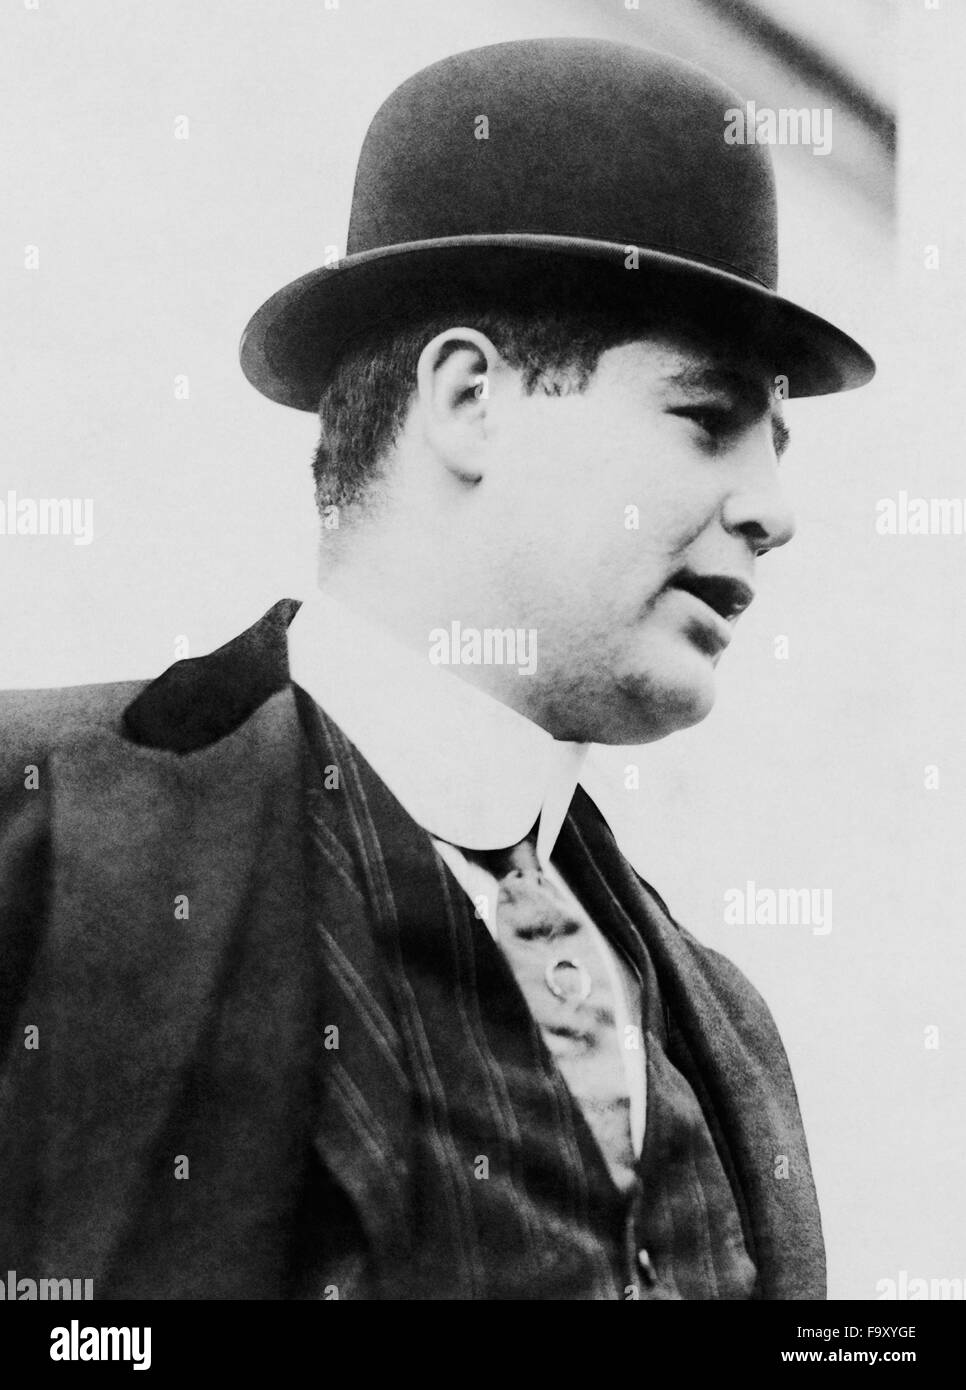 Vintage photo of American boxer Samuel Berger (1884 - 1925) - the first Olympic Heavyweight Champion. Berger, based - Stock Image